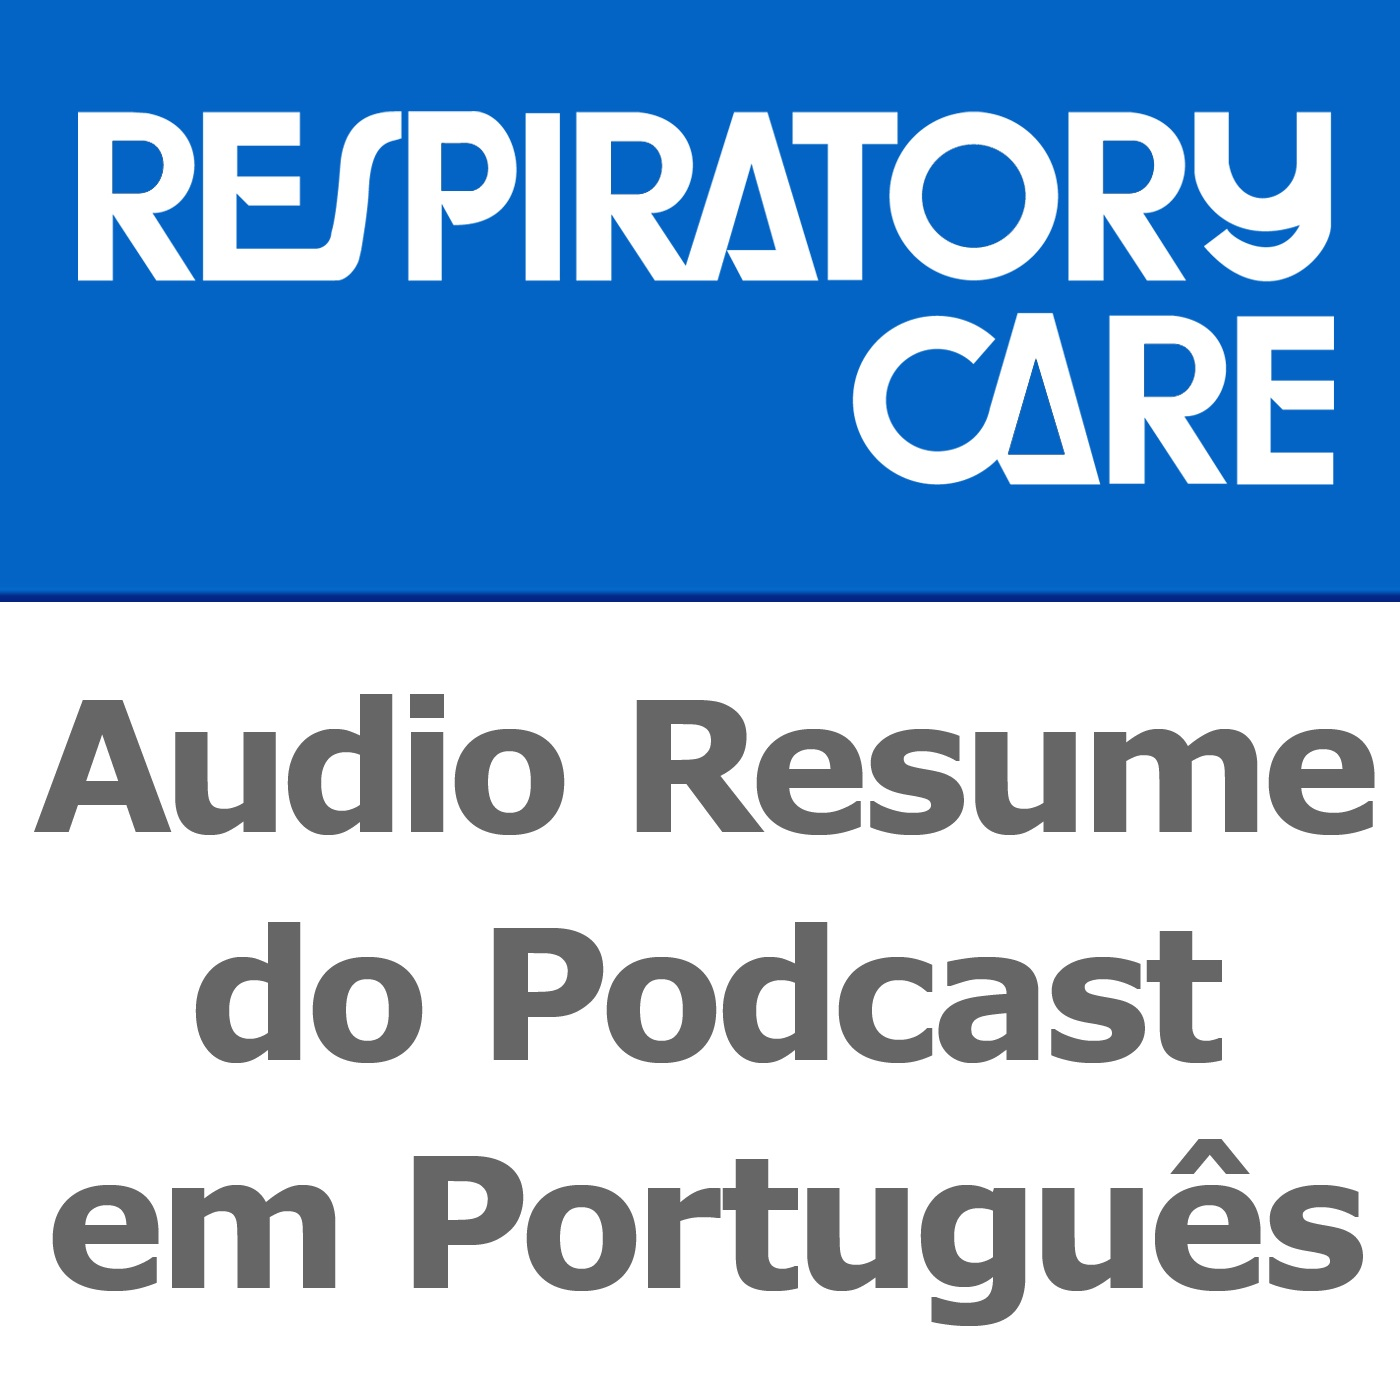 Audio Resume do Podcast em Português